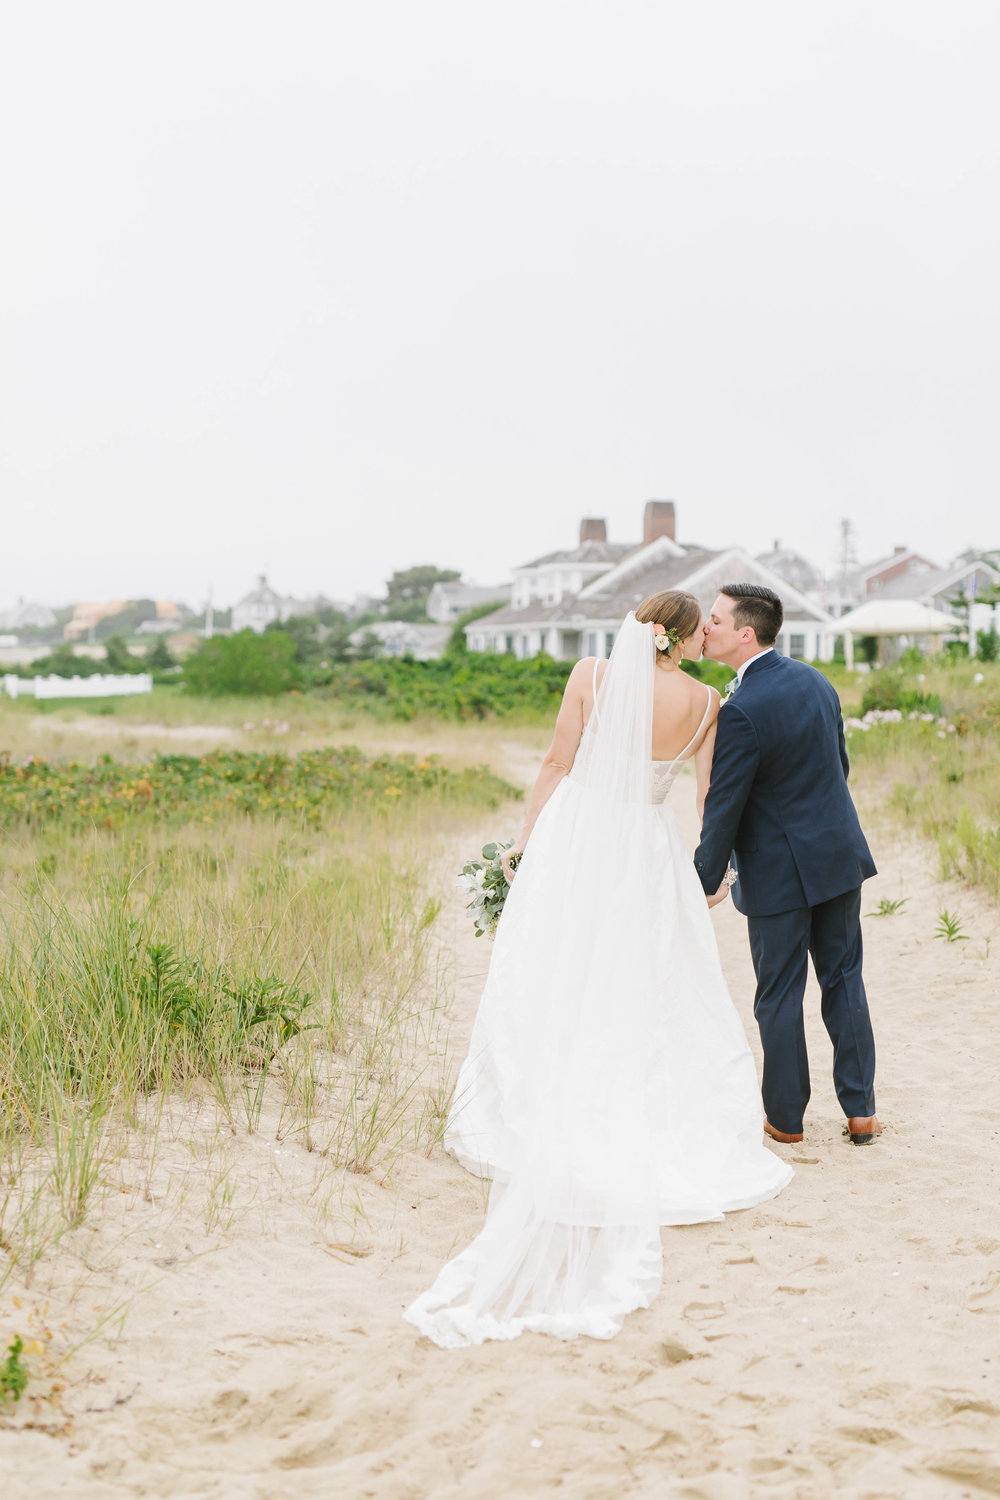 Chatham Bars Inn Cape Cod Chatham MA Beach Wedding - Emily Tebbetts Photography-5.jpg